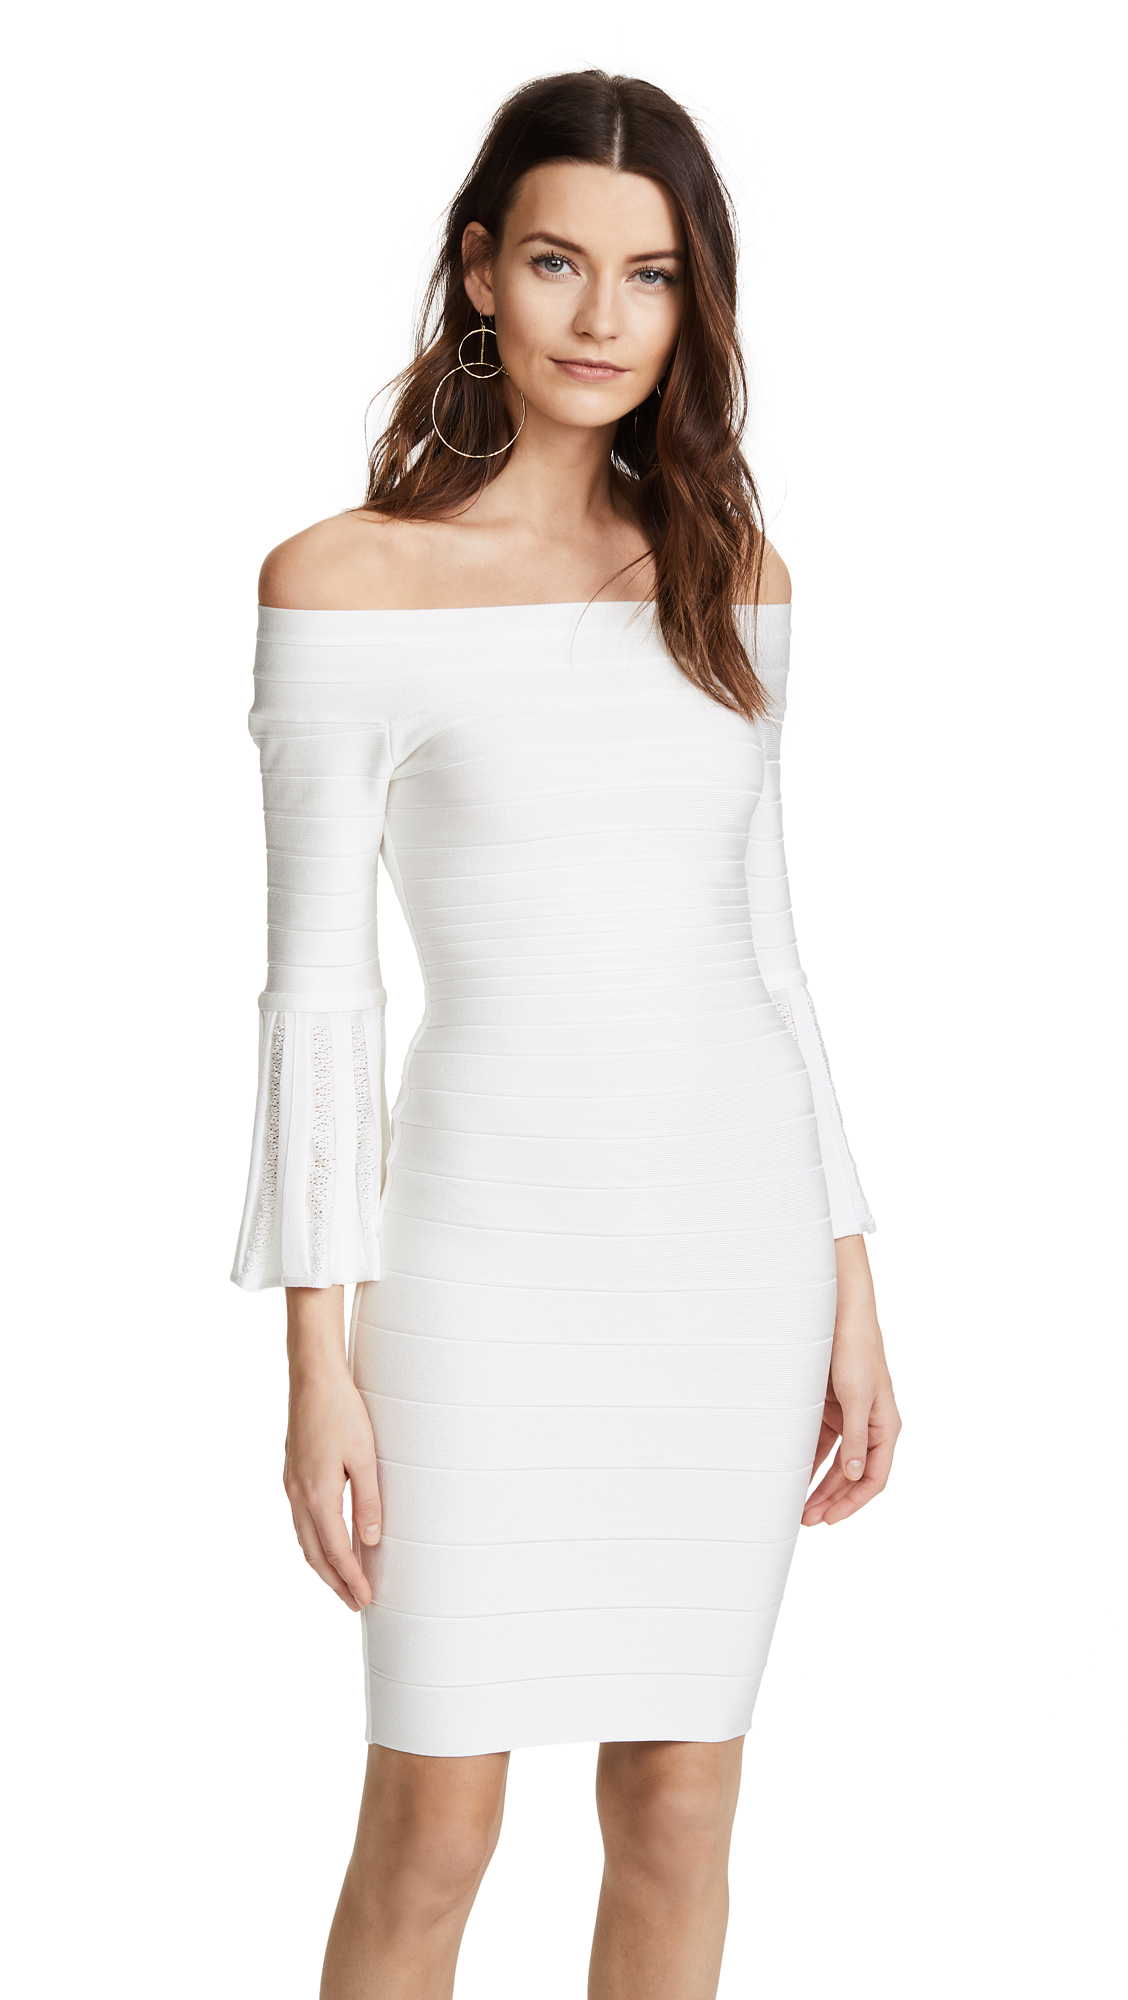 Herve Leger Bell Sleeve Off the Shoulder Dress - Alabaster